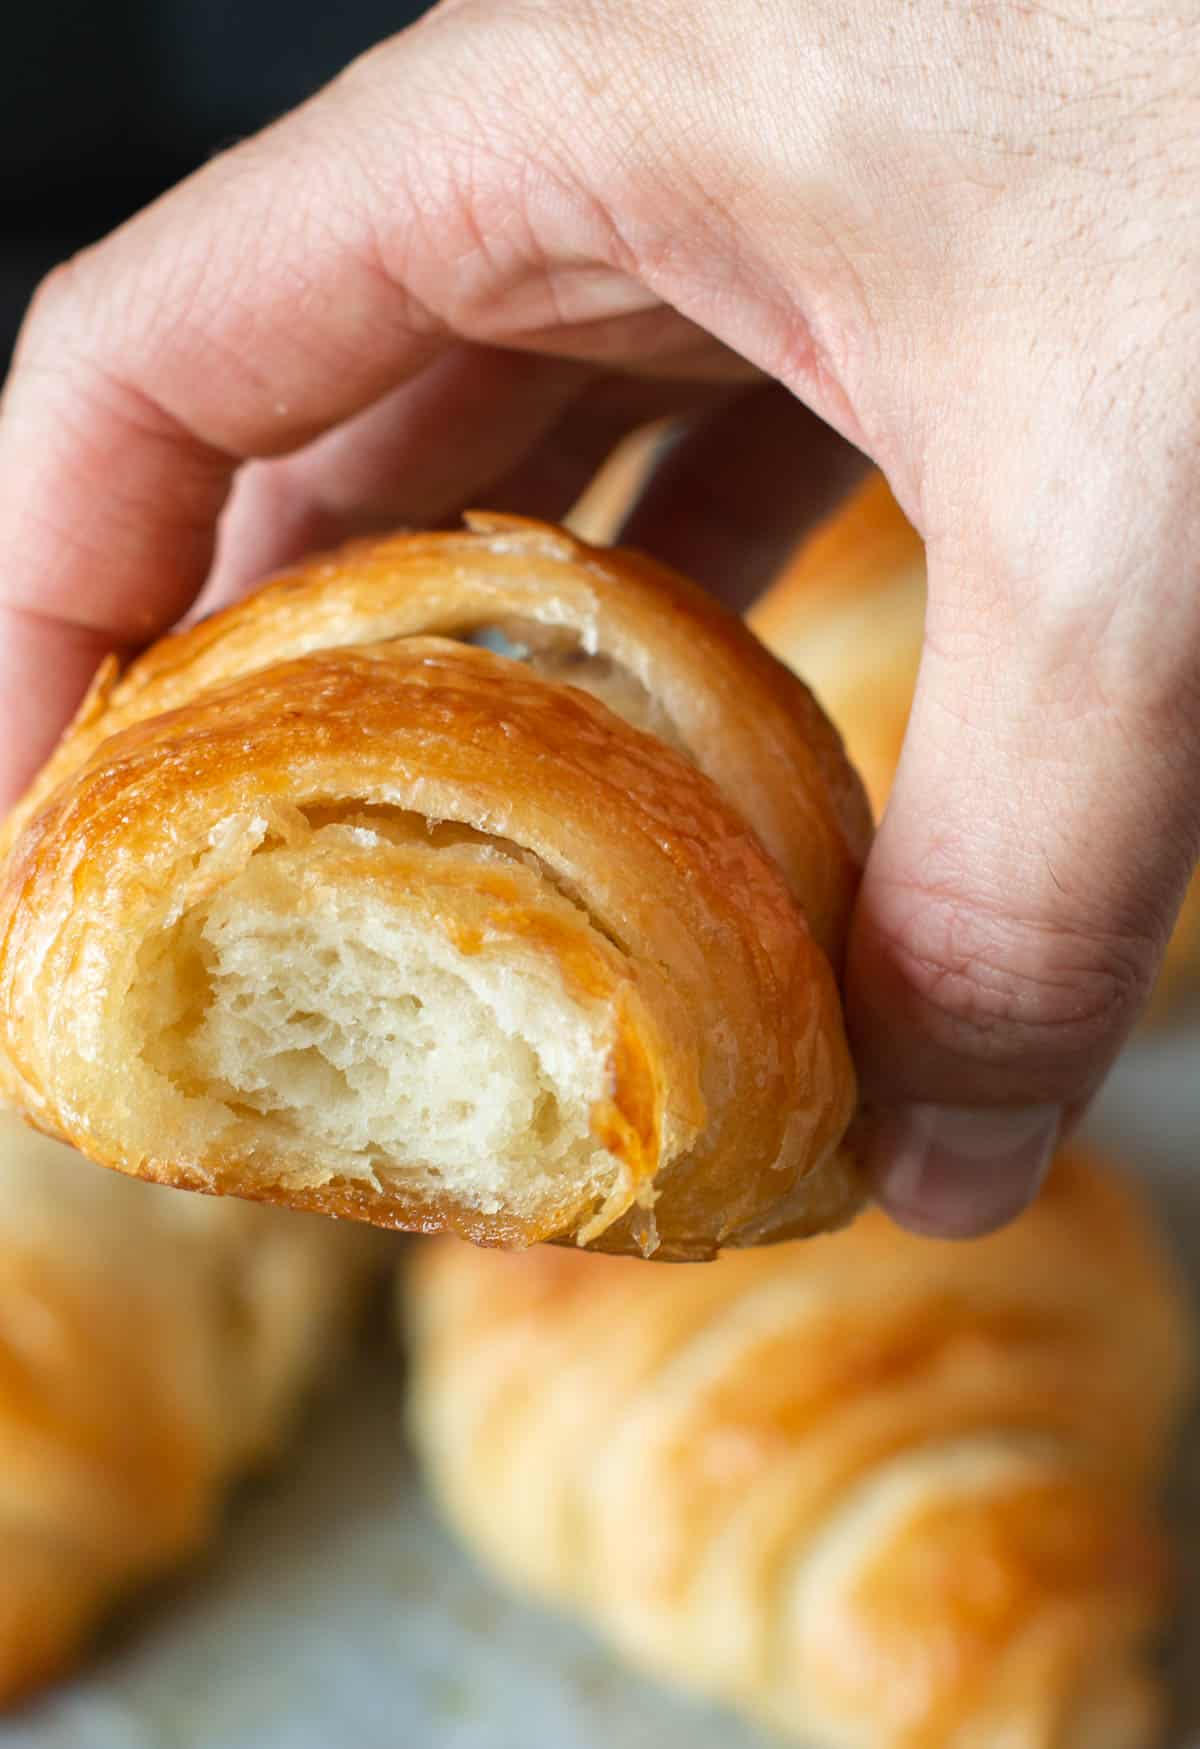 Image of a croissant with a bite in it